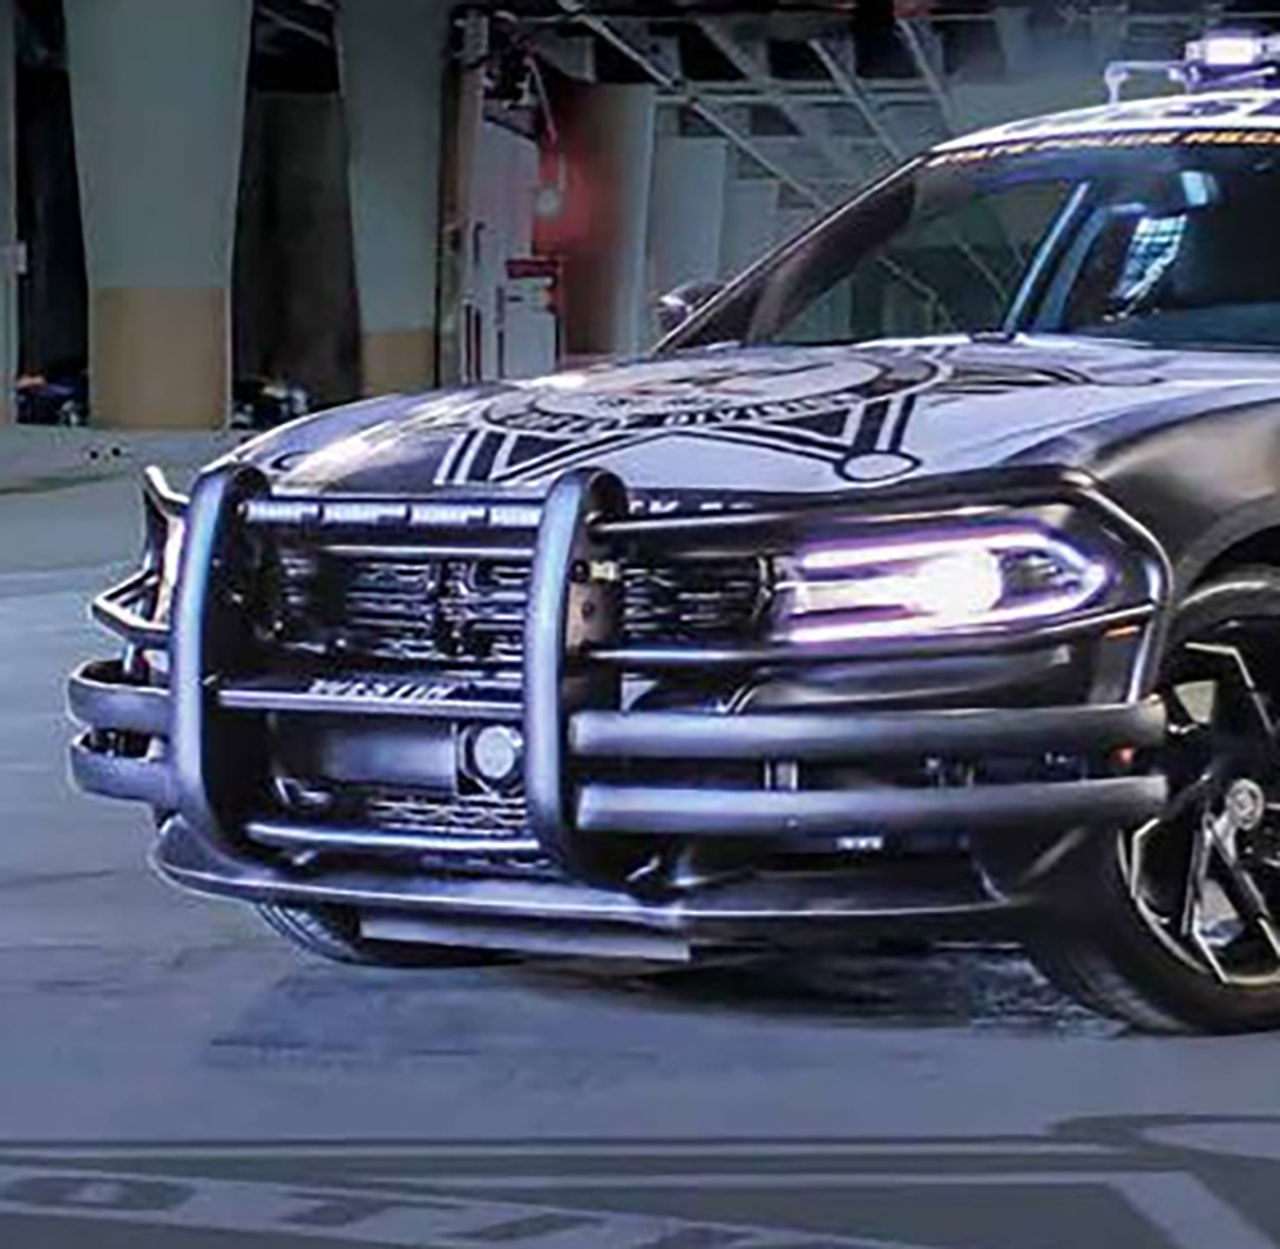 Westin Push Bar Lite Dodge Charger Pursuit 2011 2019 Brush Guard Optional Led Warning Lights Optional Pit Bar And Wing Wraps Dana Safety Supply